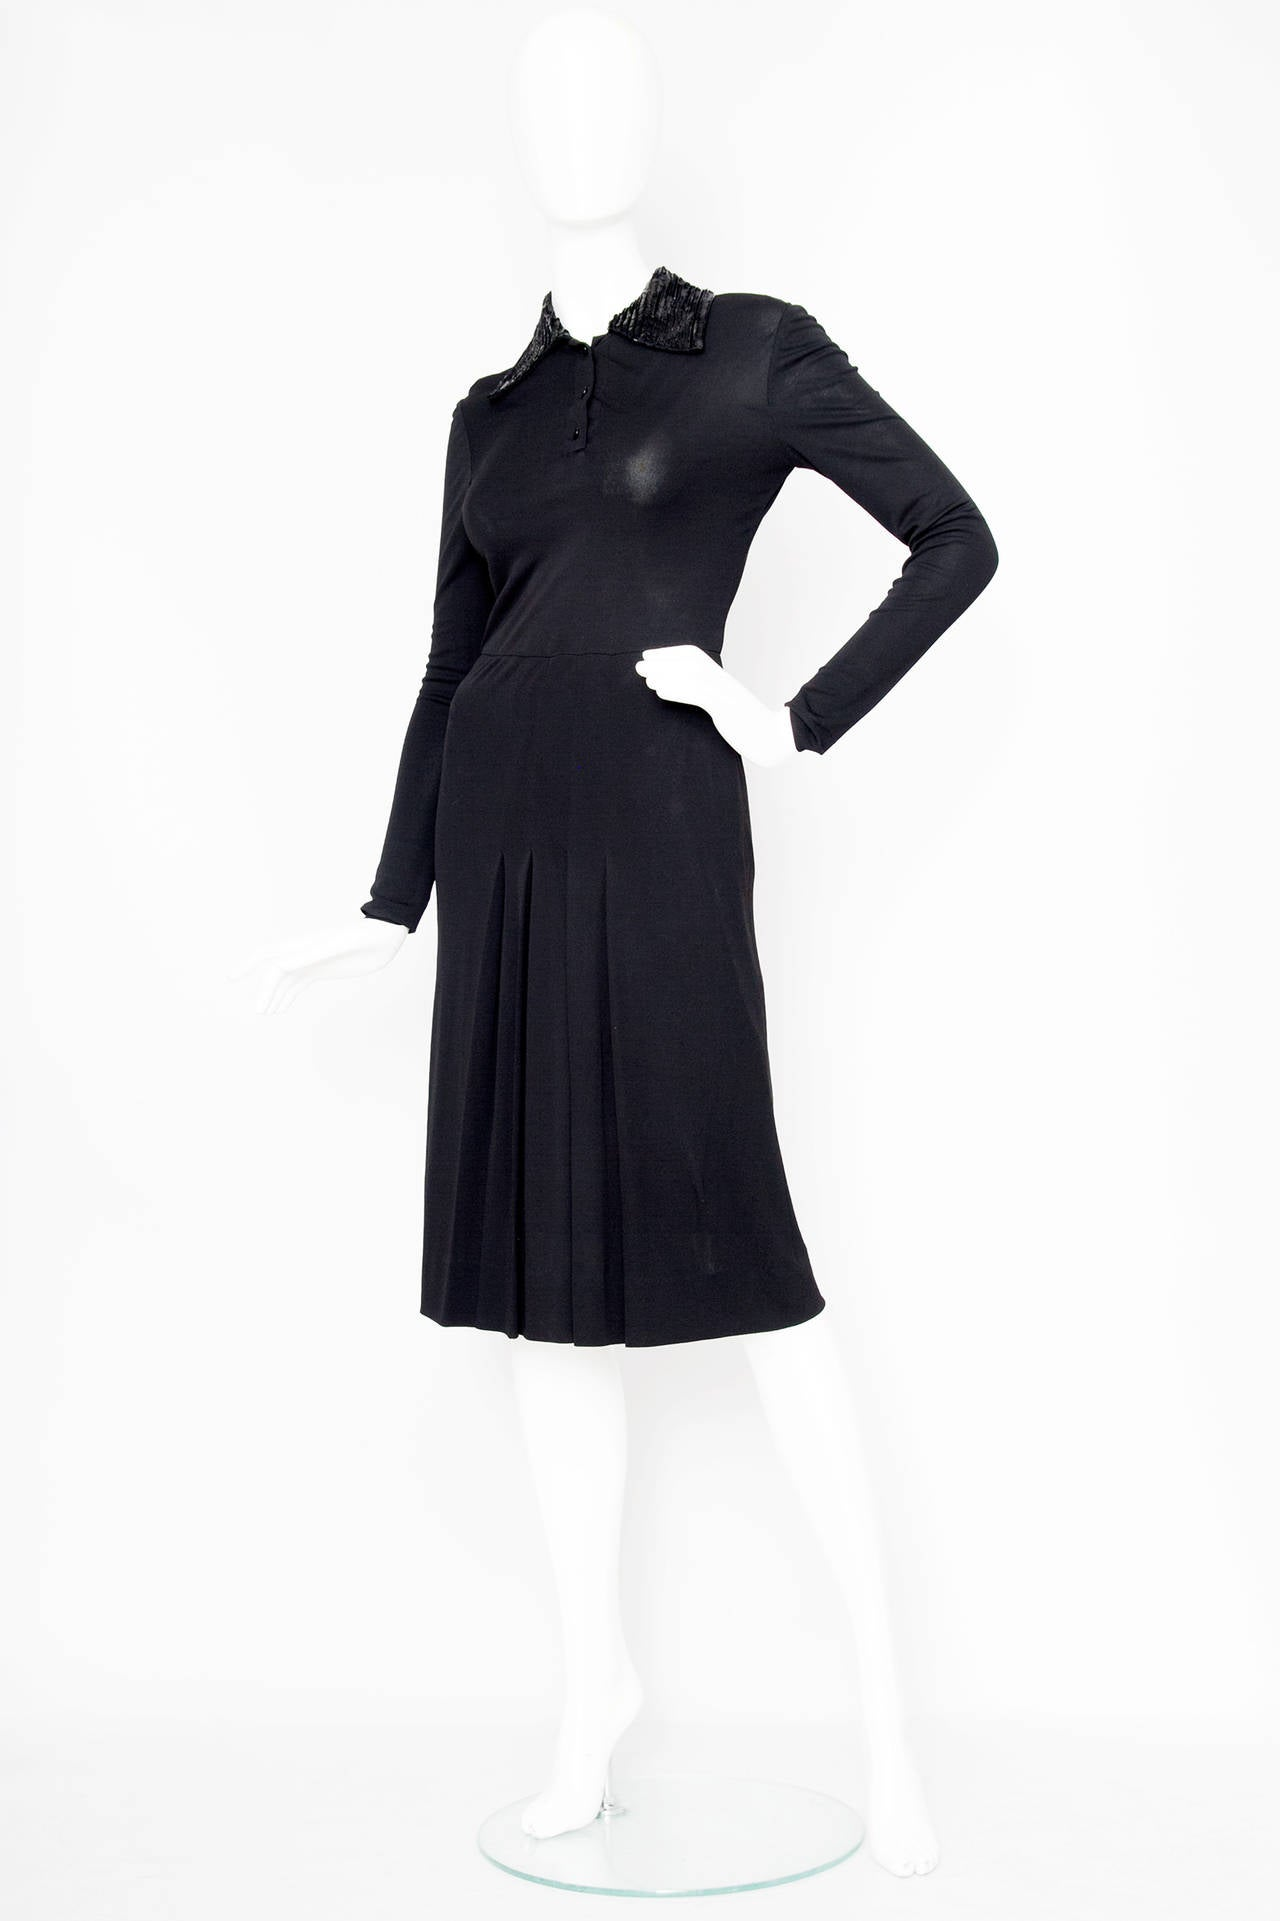 A stunning 1960s Miss Dior silk jersey dress with tapered sleeves and a nipped in waist. The dress has gentle pleats on the knee length skirt and a button down closure on the front of the blouse. The collar is beaded in a stripped pattern with both